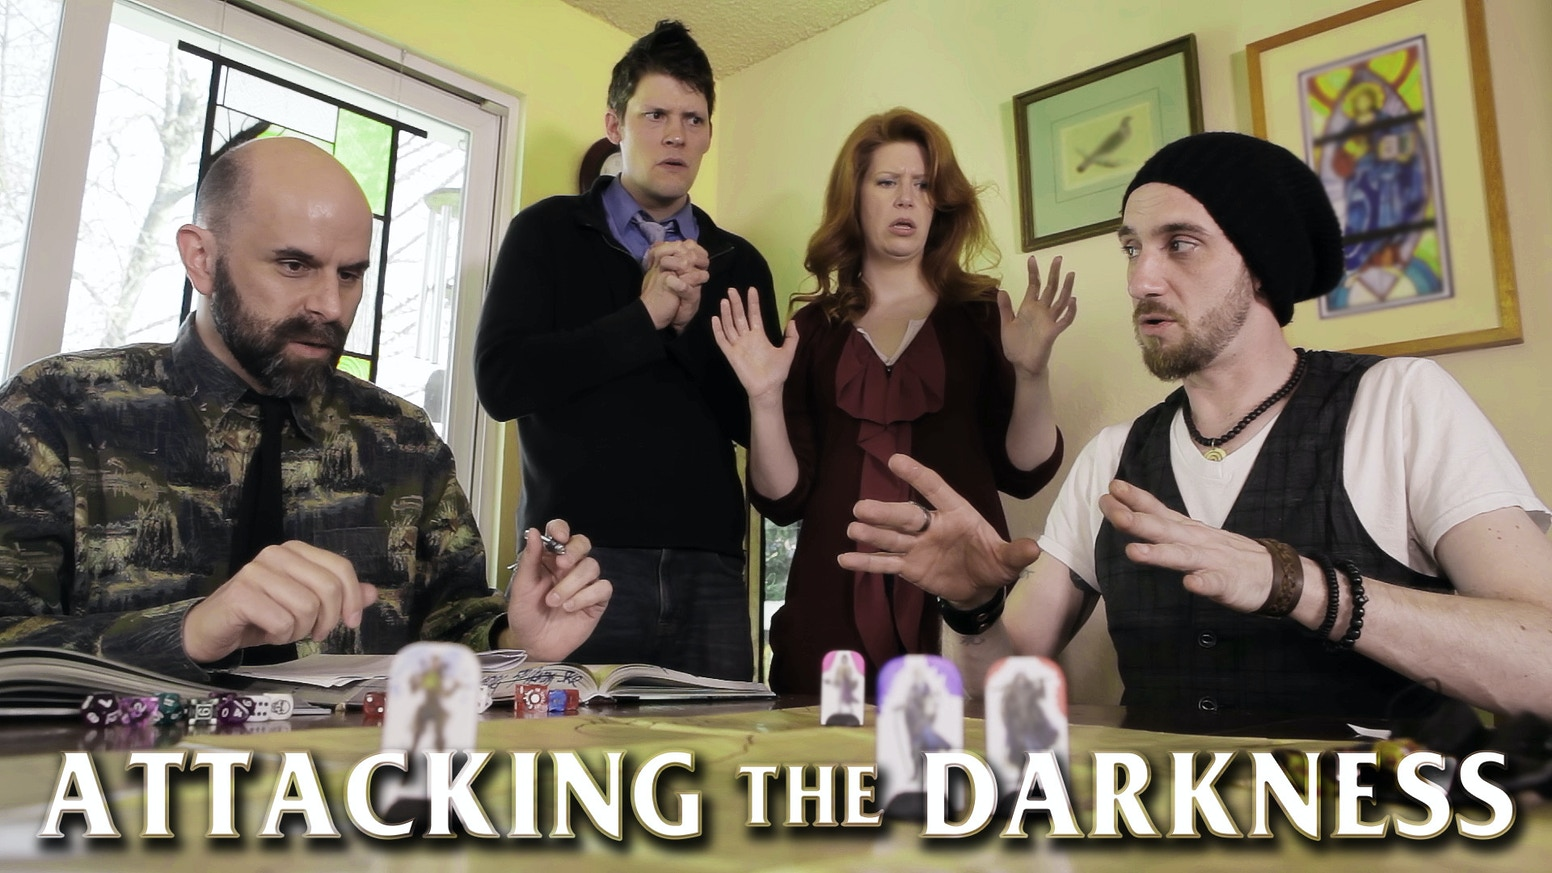 A comedy mockumentary about the people who want to ban tabletop gaming and their epic quest: to produce the ultimate anti-RPG movie.